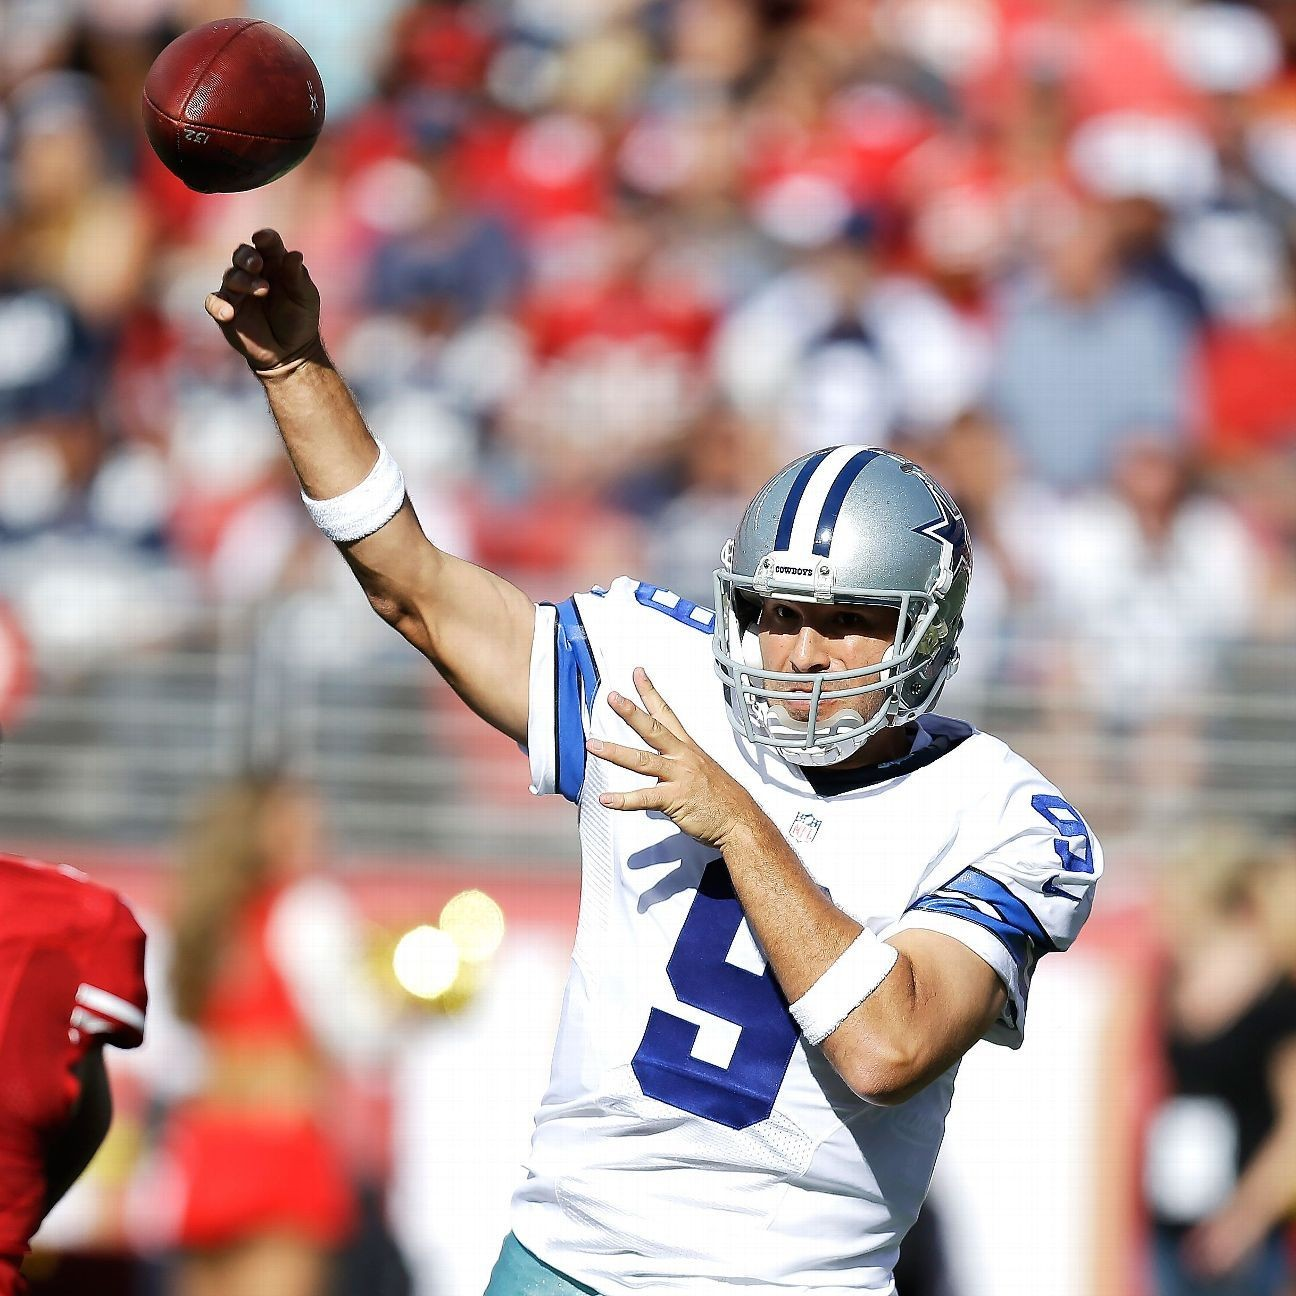 Tony Romo of Dallas Cowboys doesnt belong in richest NFL